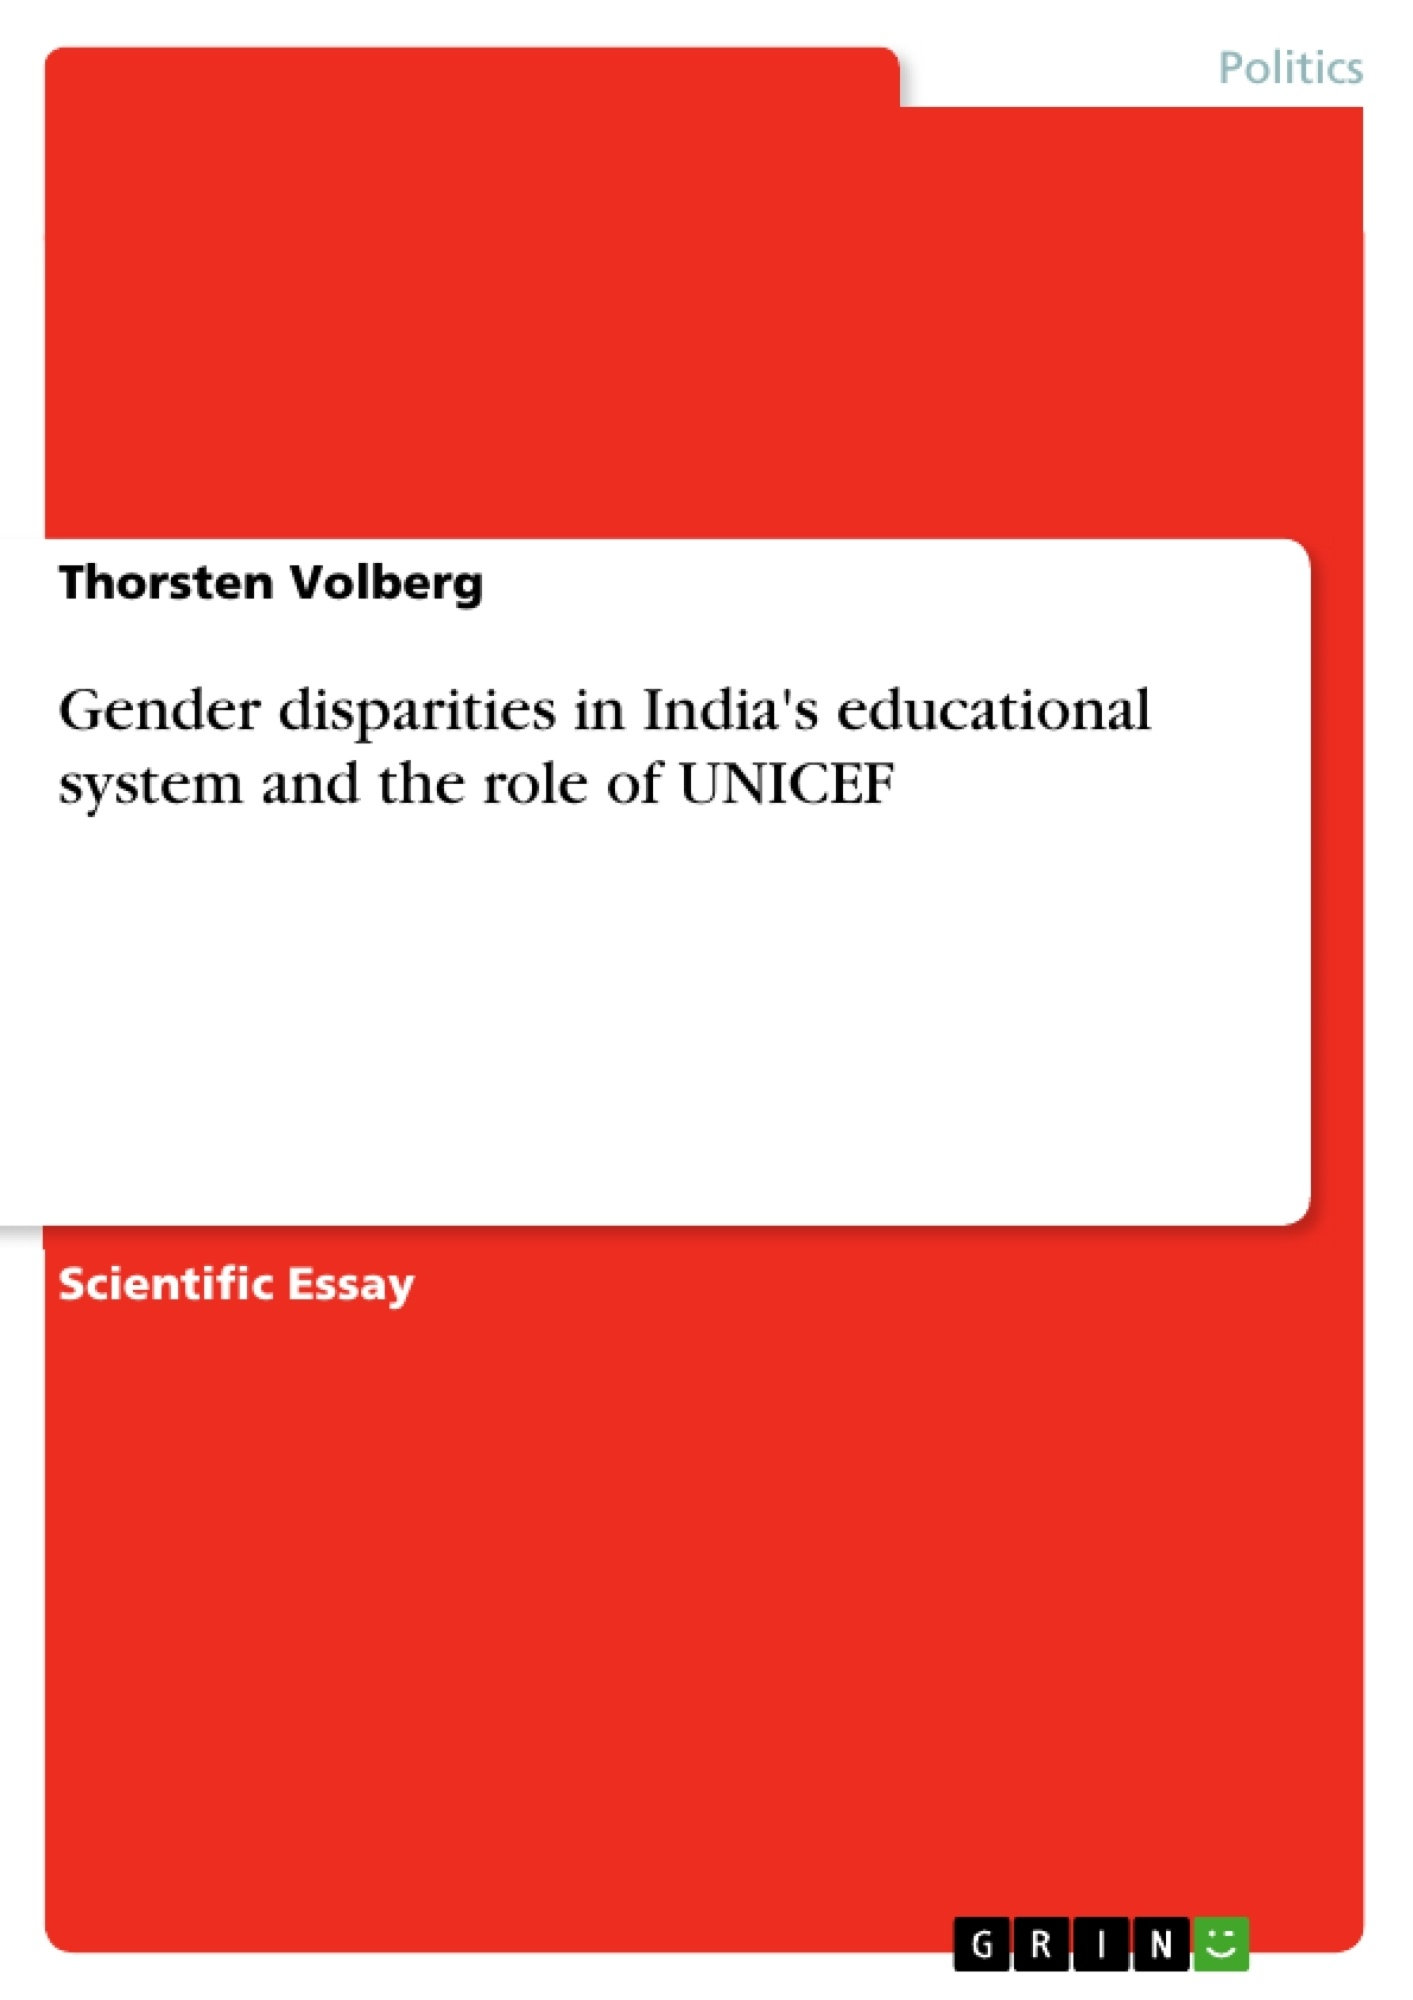 Title: Gender disparities in India's educational system and the role of UNICEF